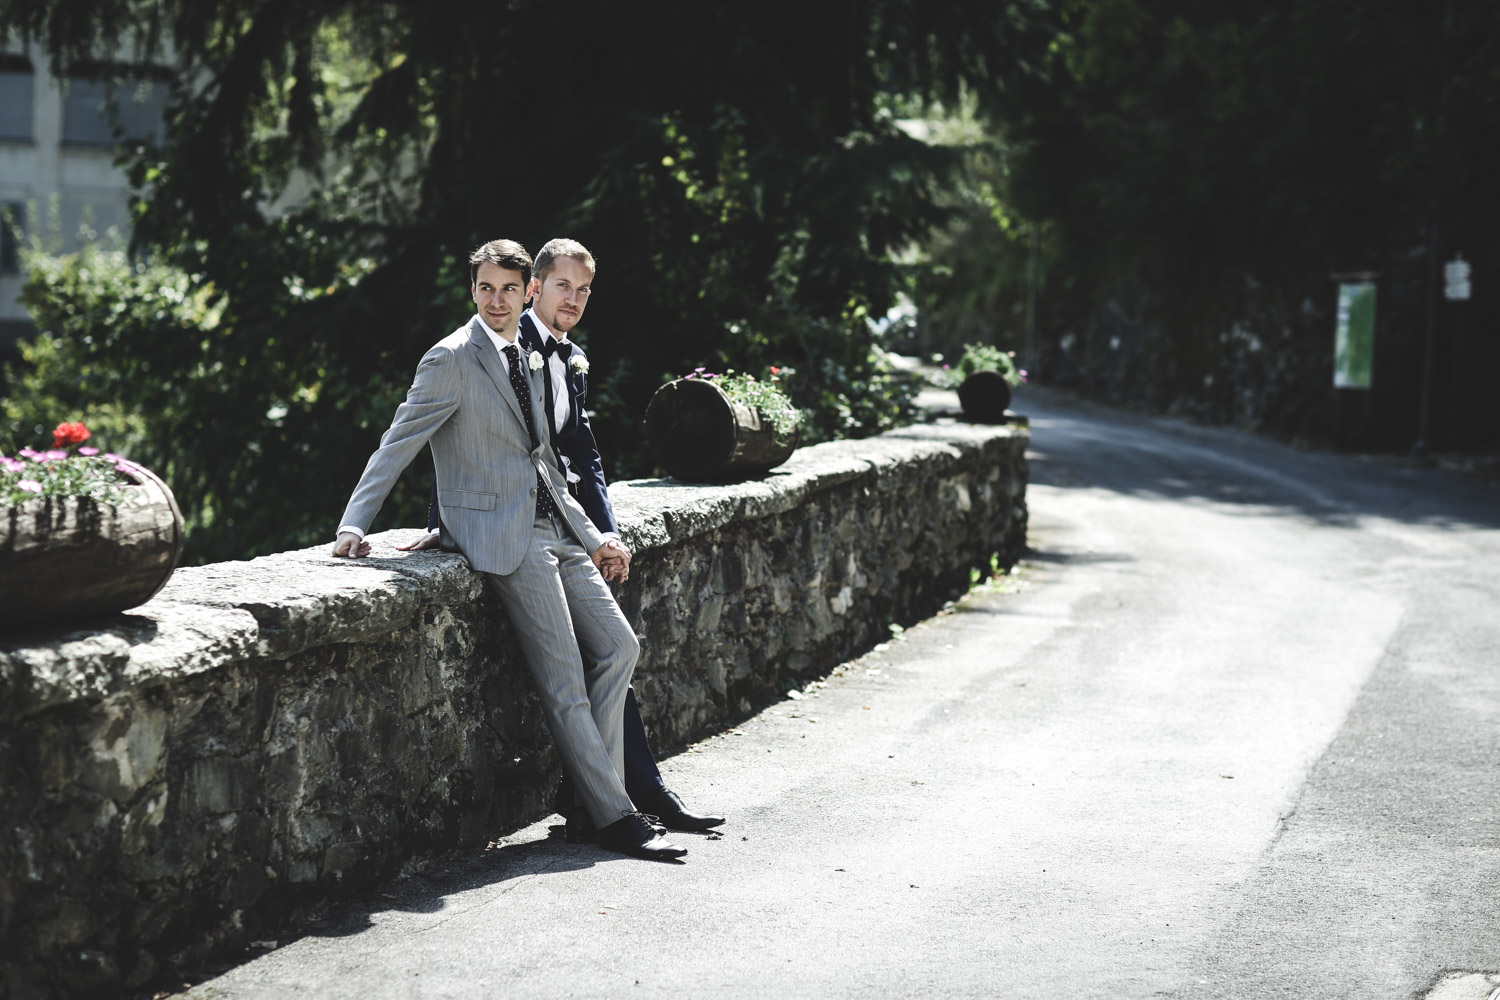 monica-sica_photography_trattoria-revelli_wedding-gay_torino_day_59